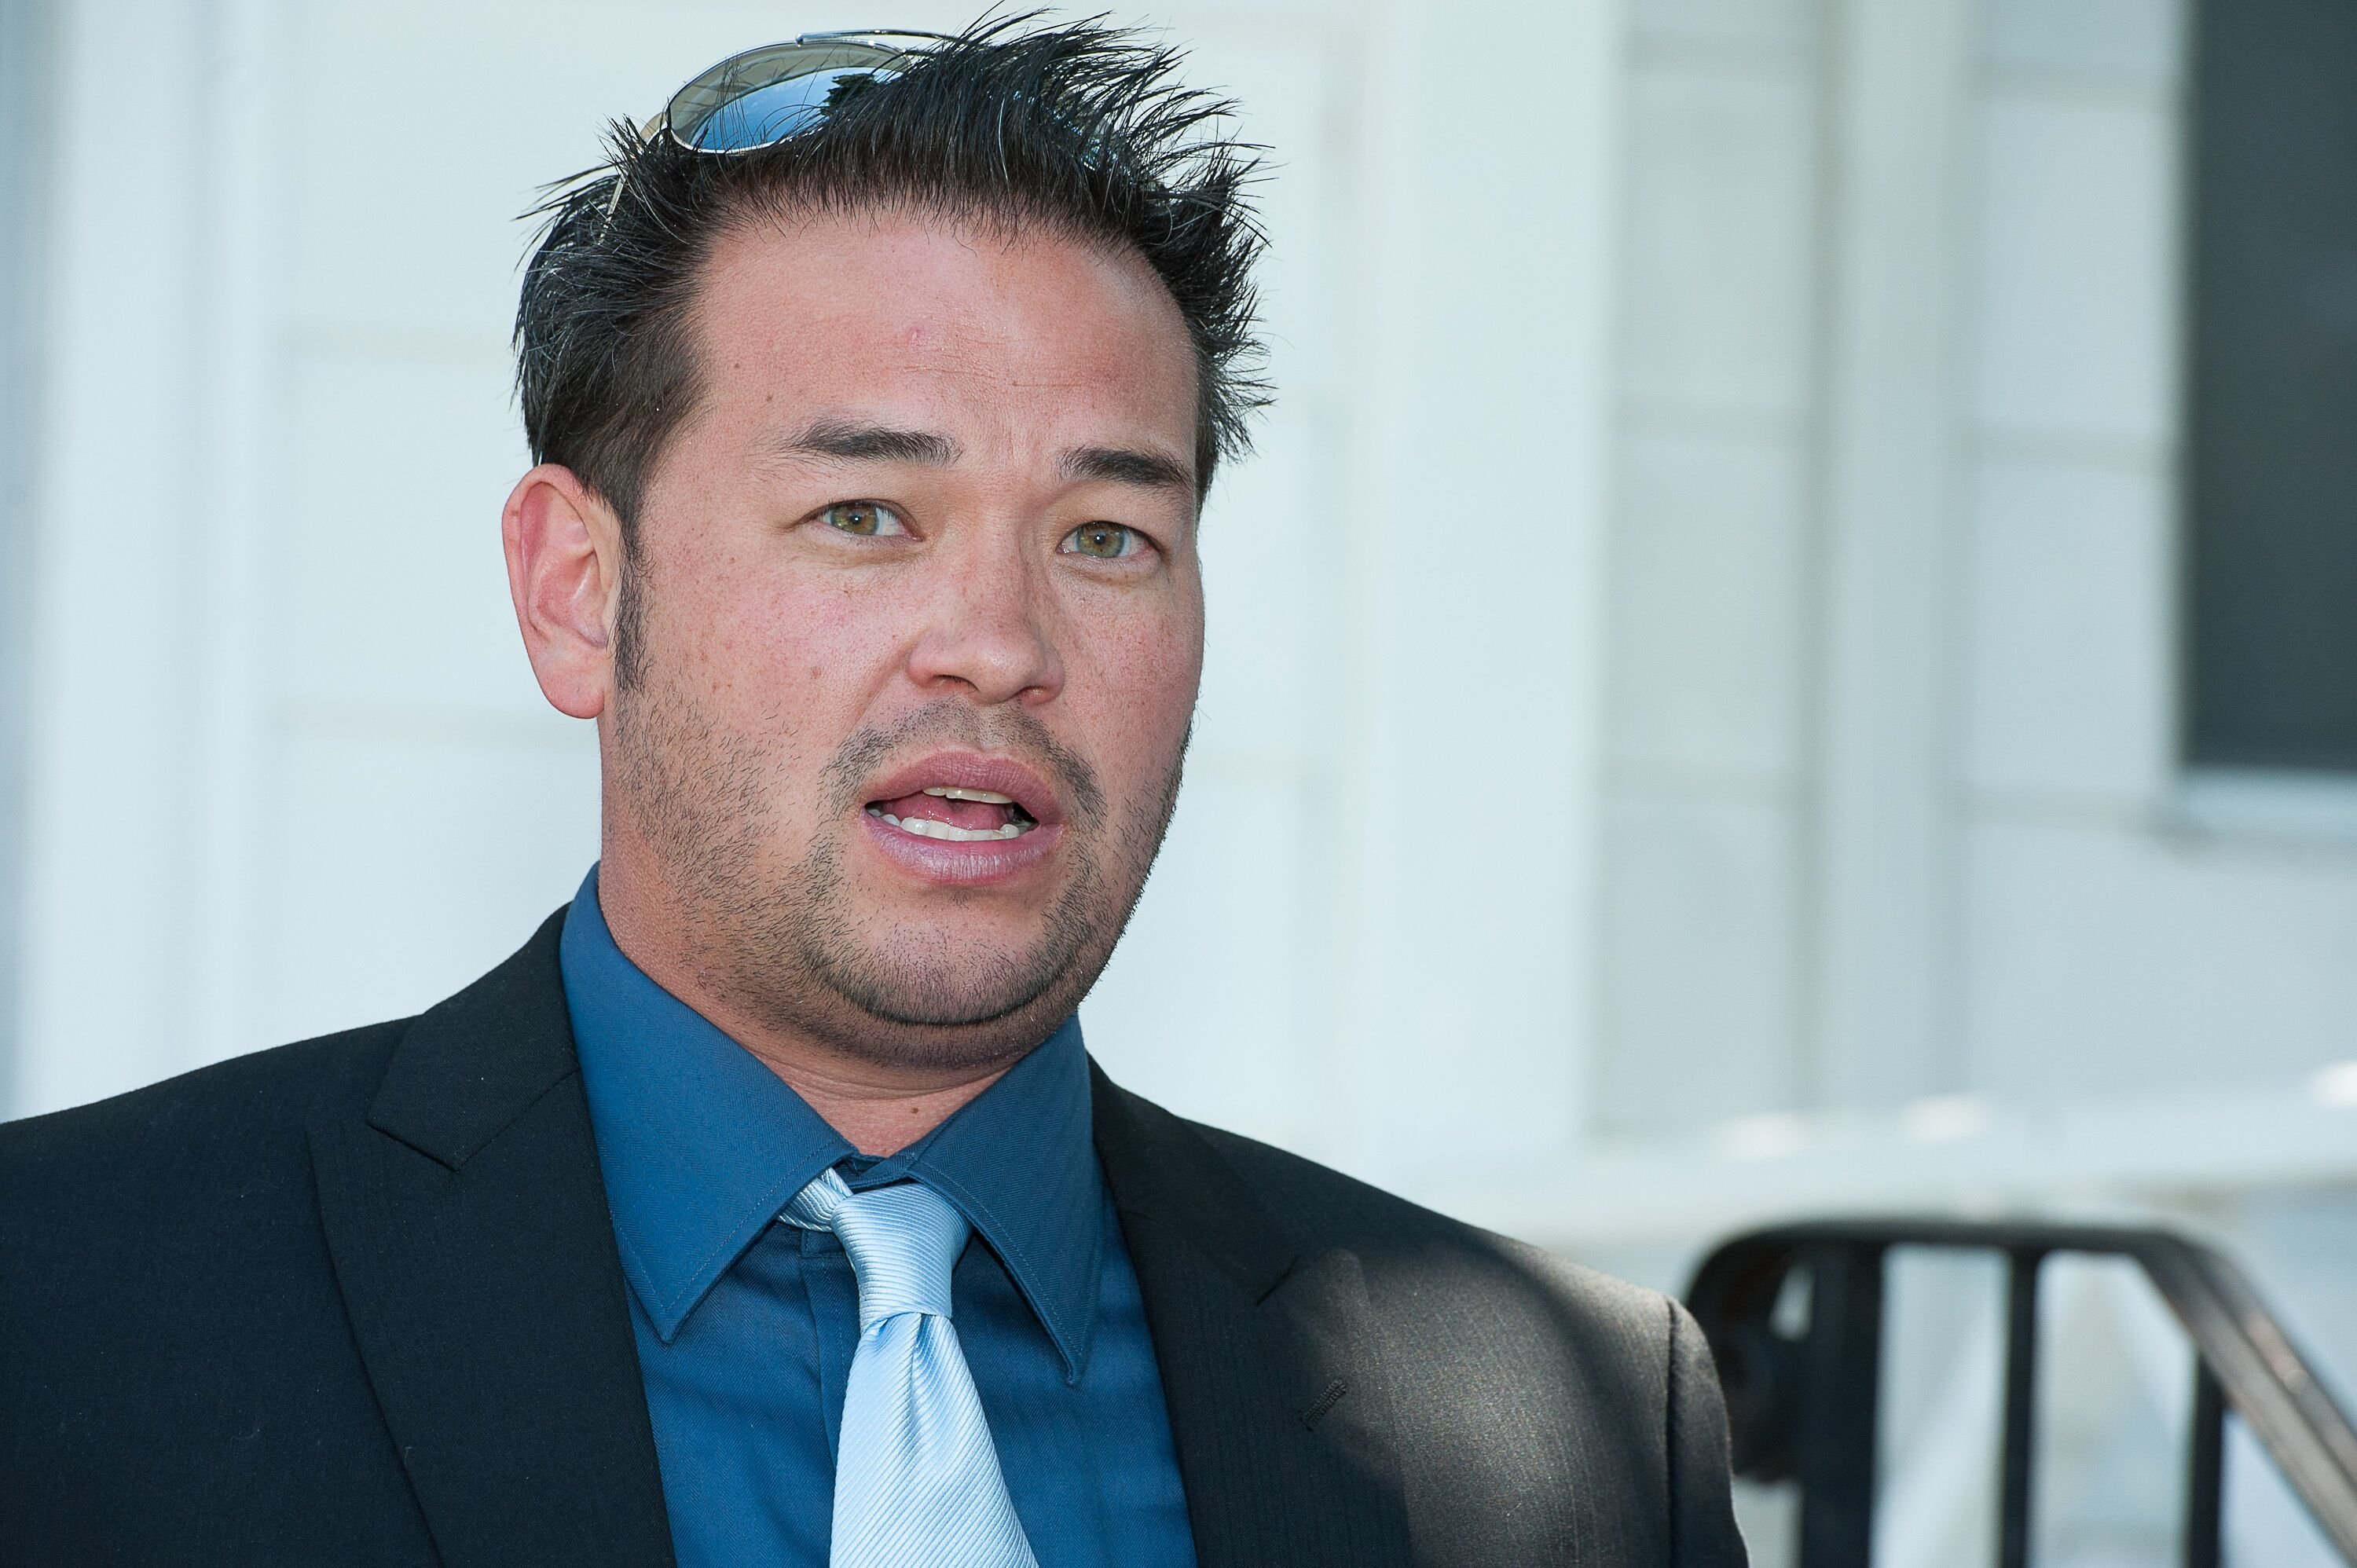 Jon Gosselin attends a press conference on Tax Deductible Marriage Counseling at Bergen Marriage Counseling & Psychotherapy on June 27, 2012   Photo: Getty Images